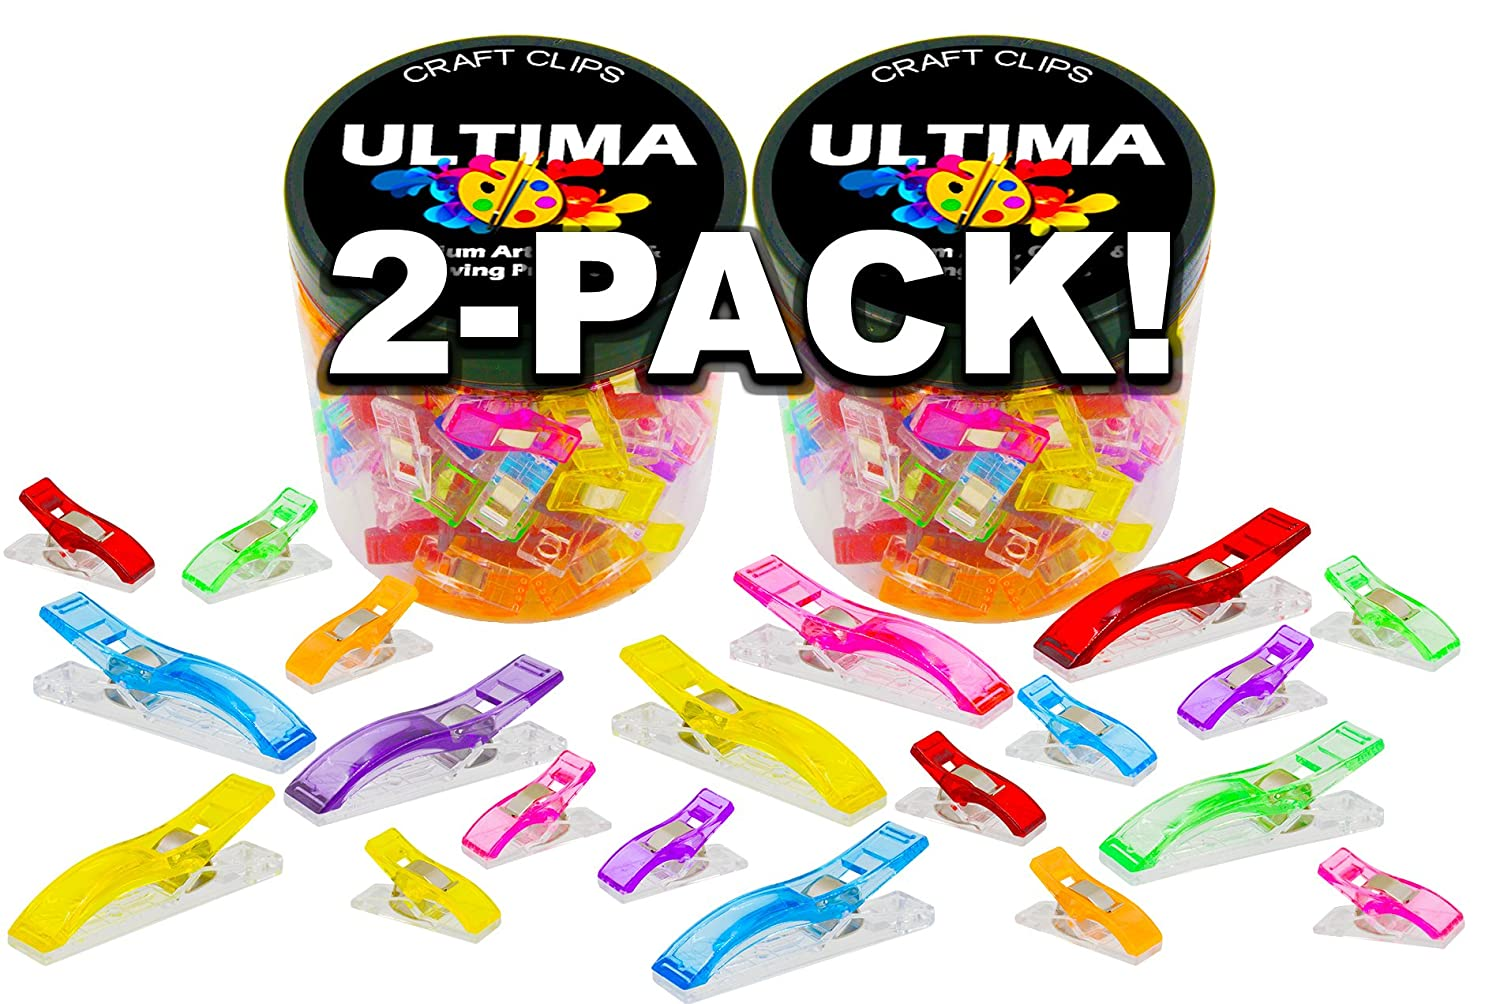 Ultima 200 Craft Clips - 50 Jumbo Clips & 150 Standard - Multicolor Plastic Sewing Clips for Crafting & Quilting - Vibrant Colors - Sewing, Craft, Crochet & Knitting (Two Pack (200 Clips))